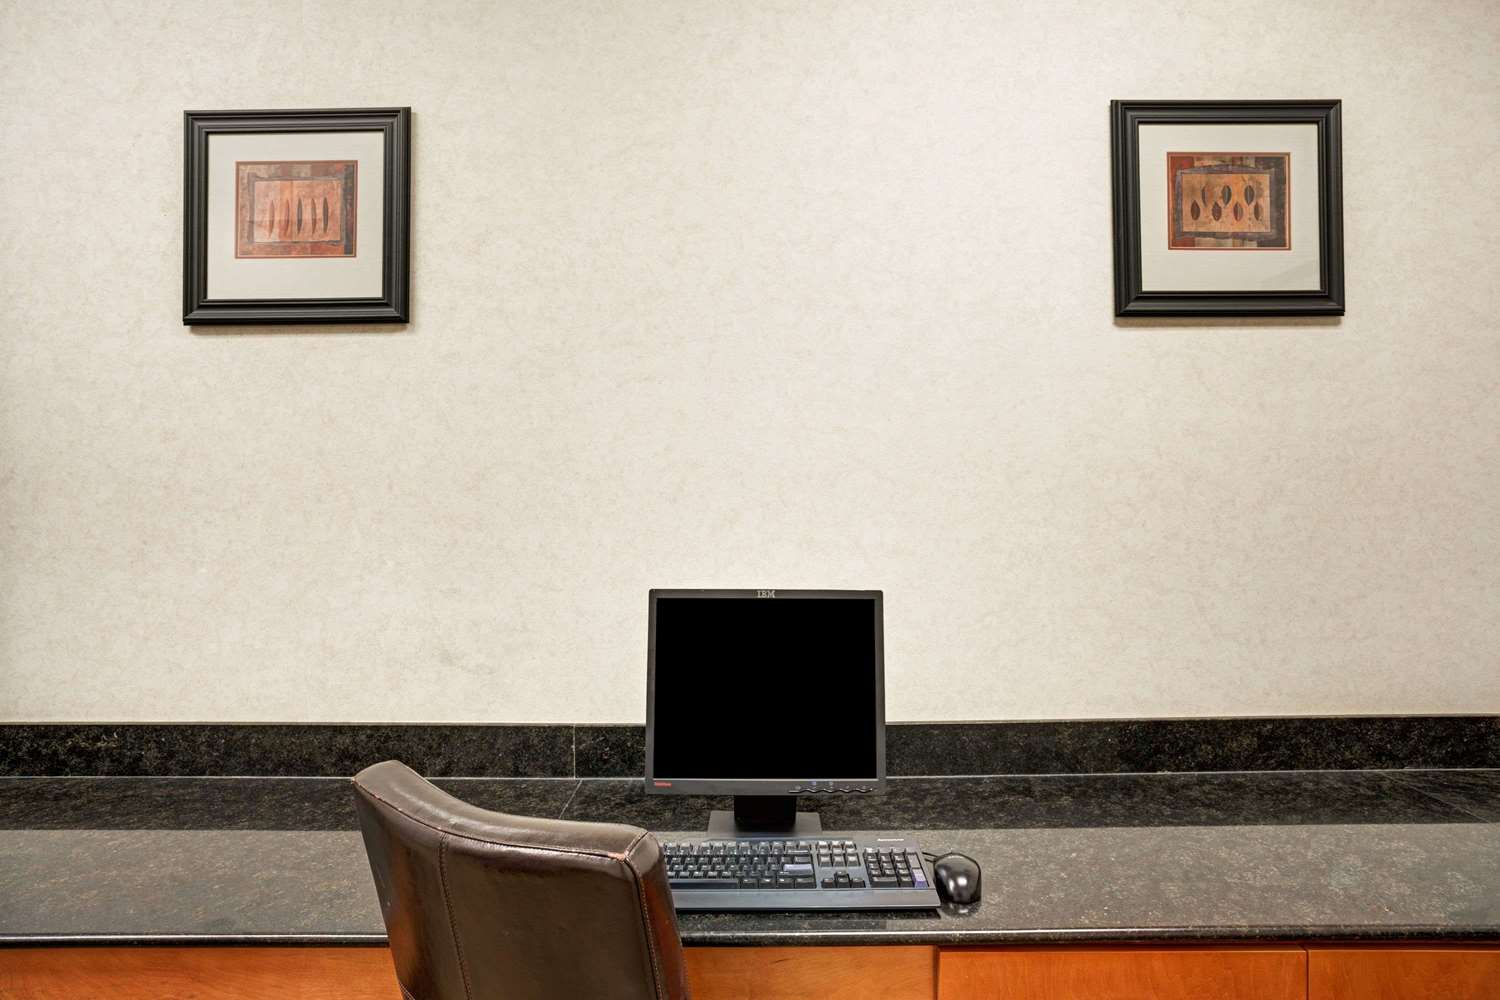 Conference Area - Wingate by Wyndham Hotel Fairburn